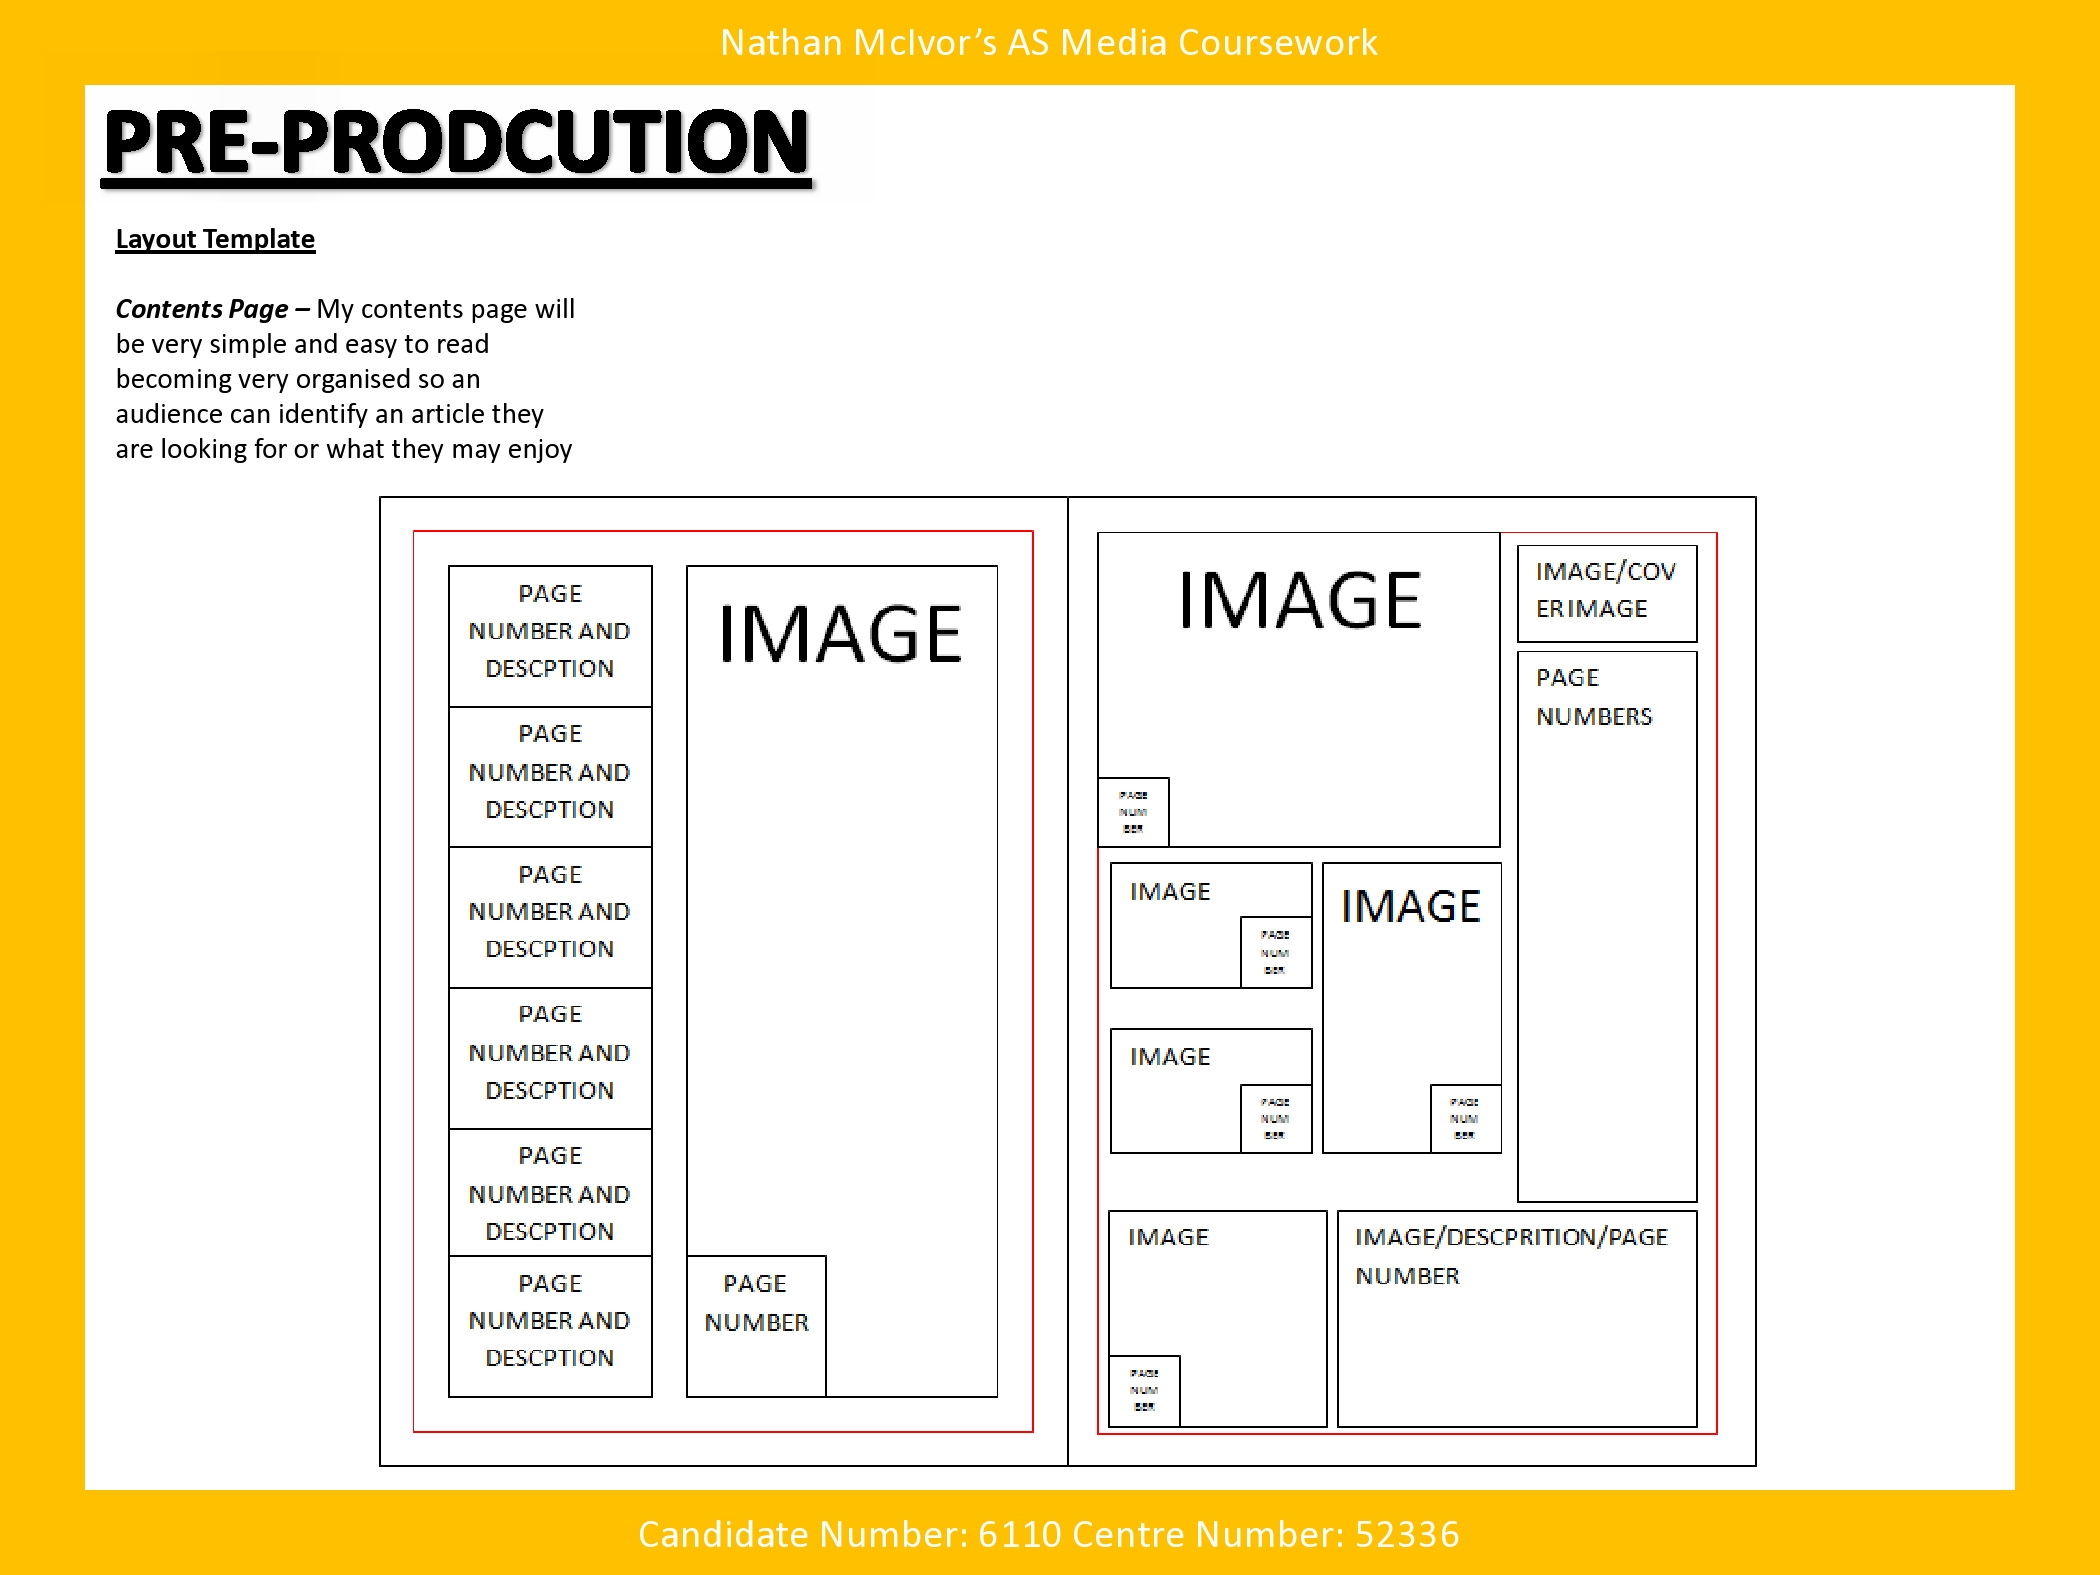 Playbill template in Microsoft word?